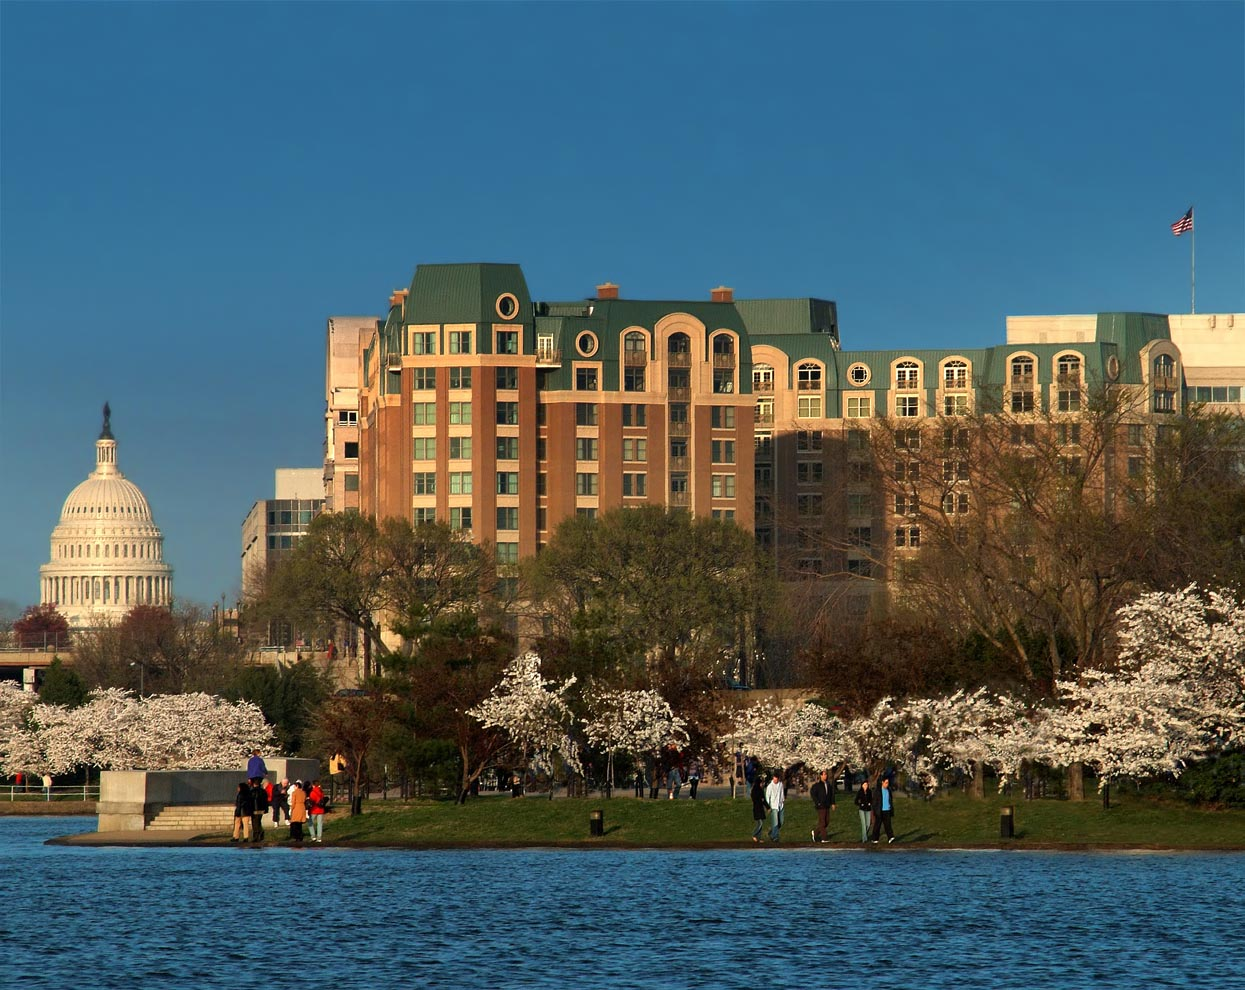 US Capitol and hotel across water with cherry trees in bloom